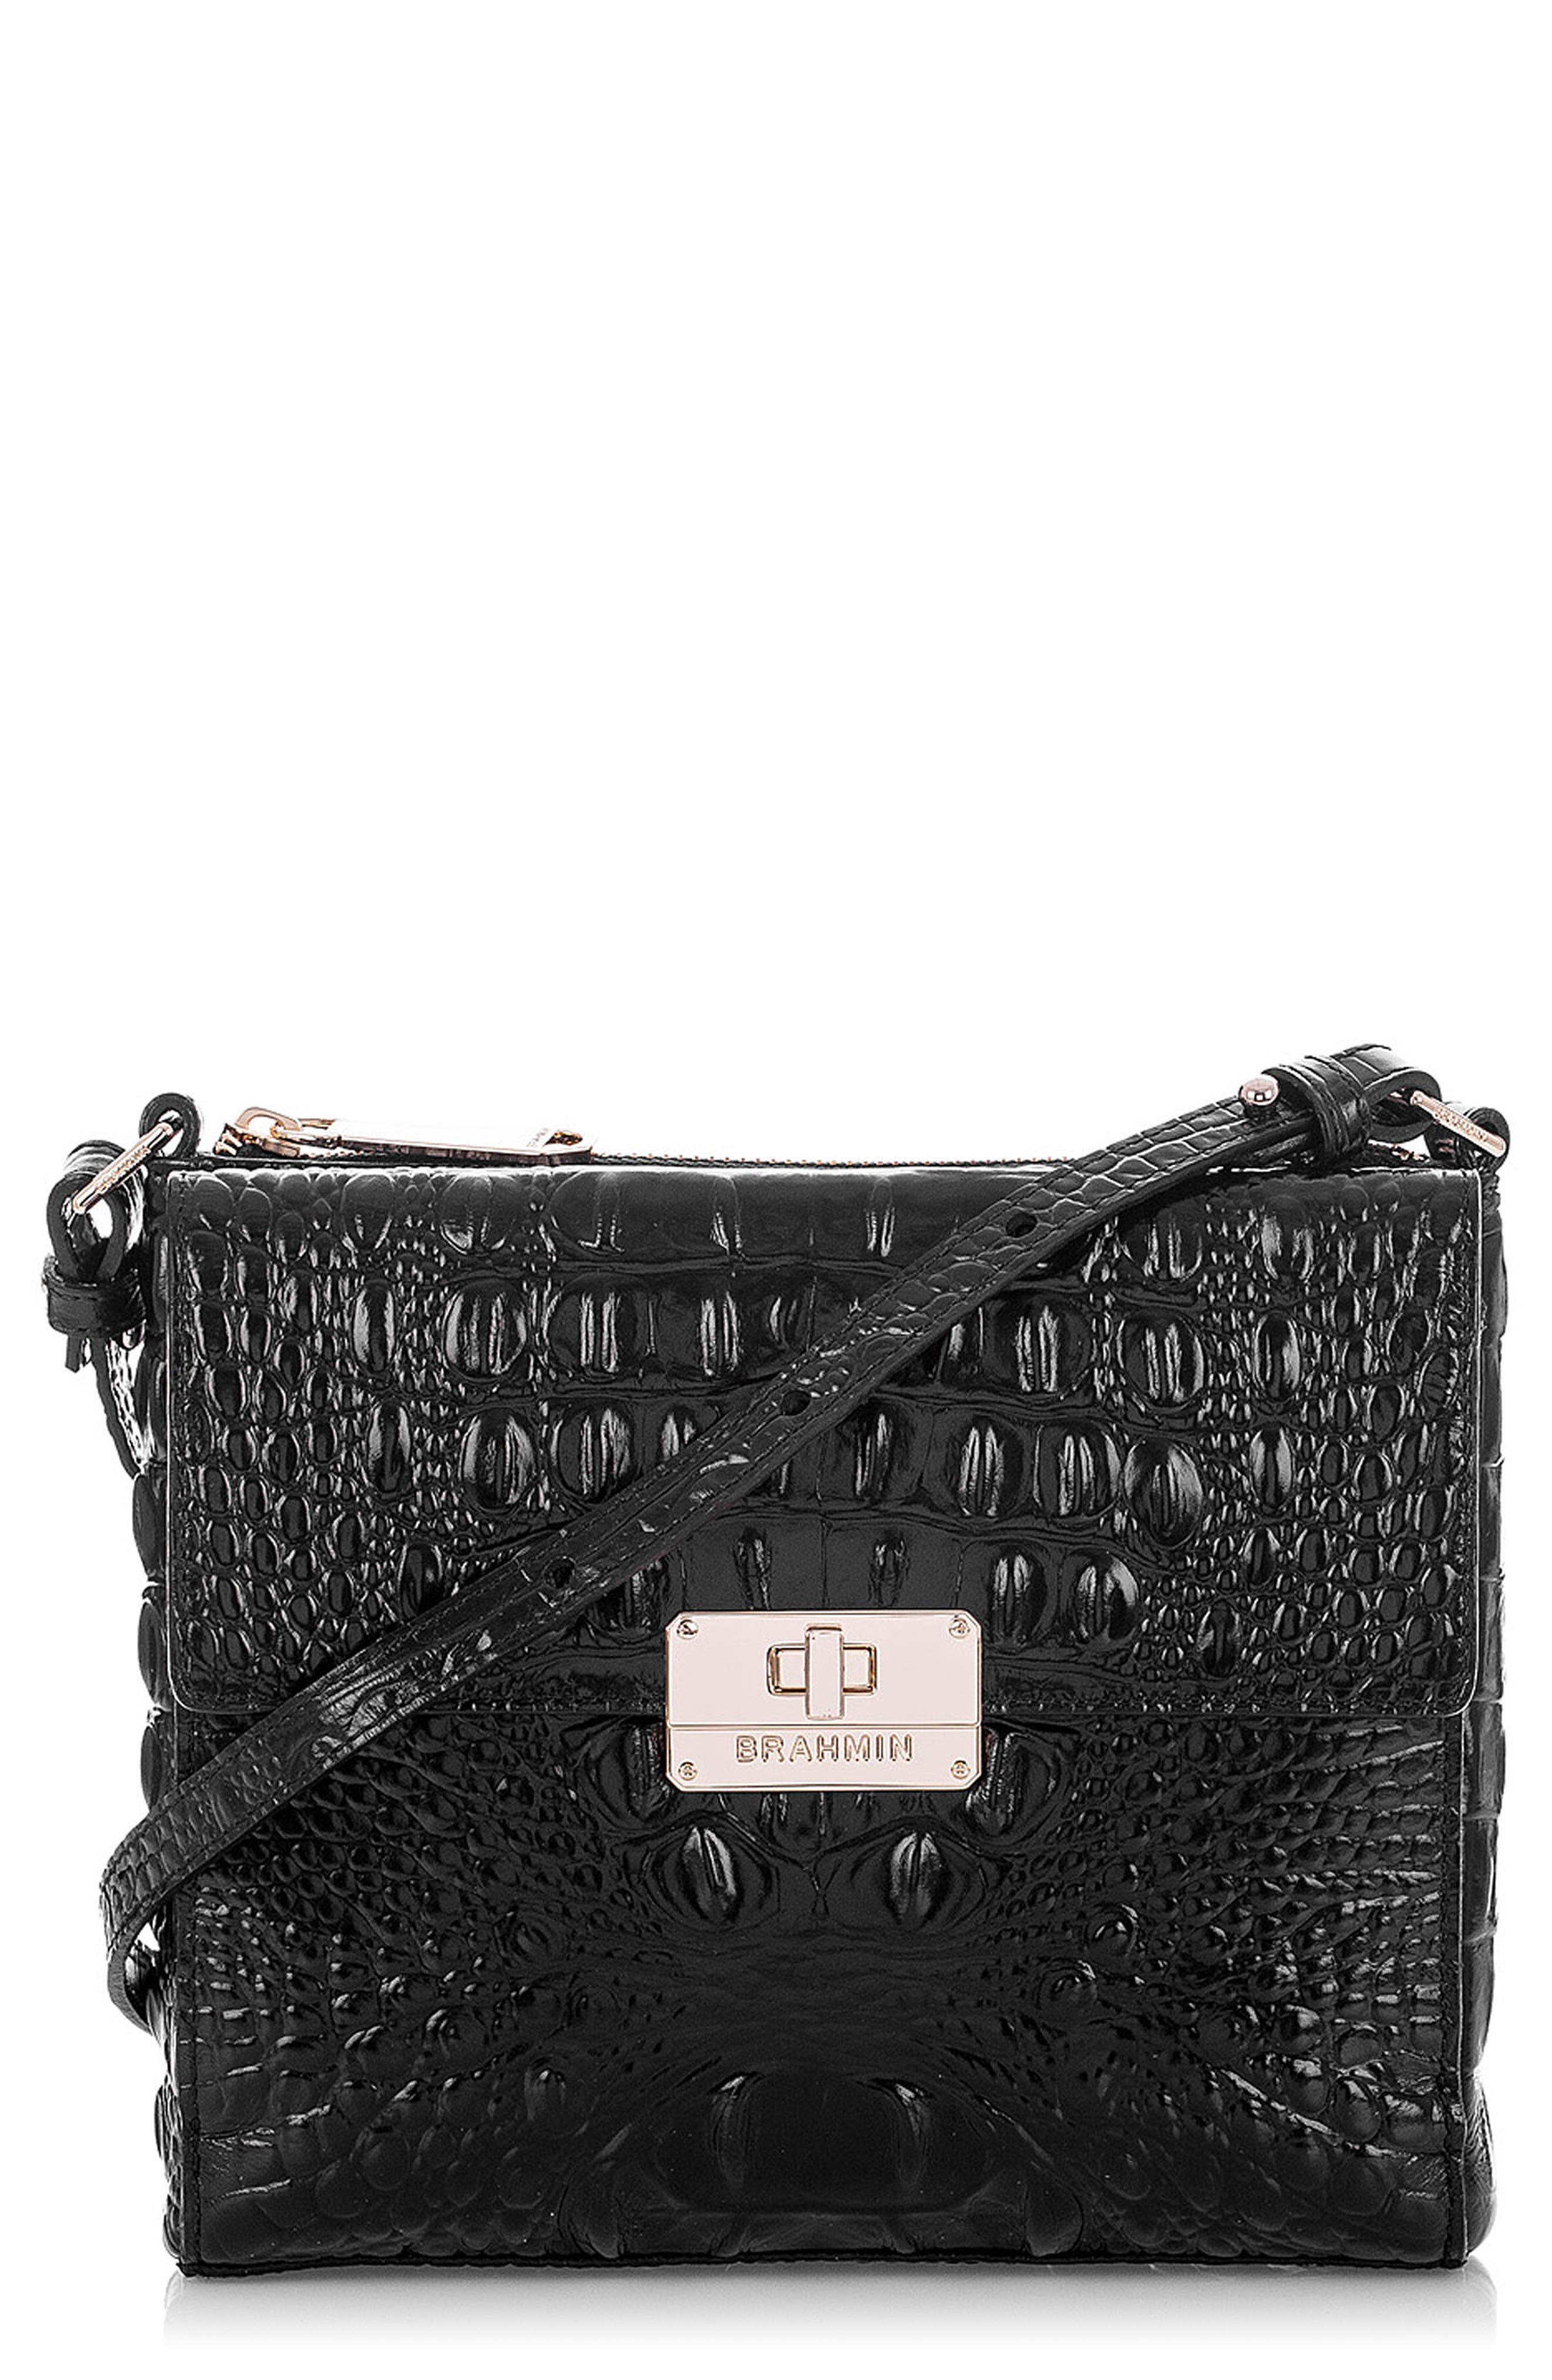 Melbourne Manhattan Croc Embossed Leather Crossbody Bag,                             Main thumbnail 1, color,                             BLACK